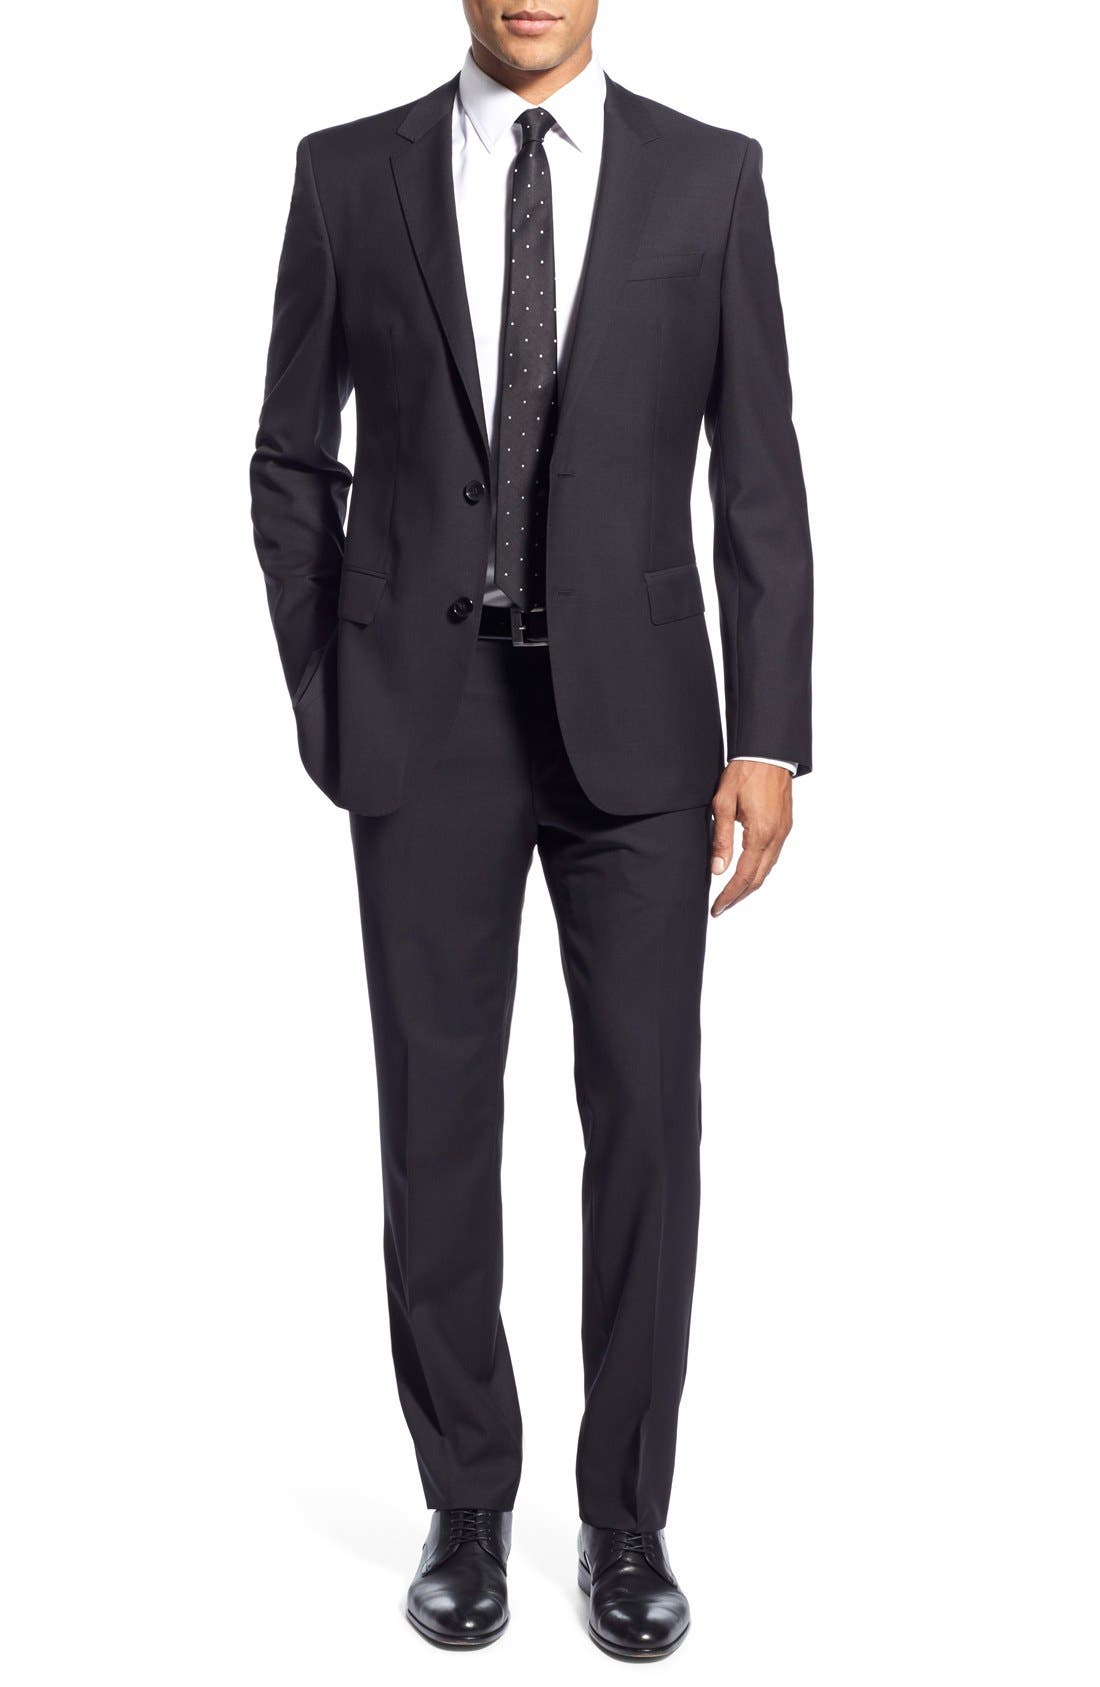 Alternate Image 1 Selected - BOSS 'Huge/Genius' Trim Fit Solid Wool Suit